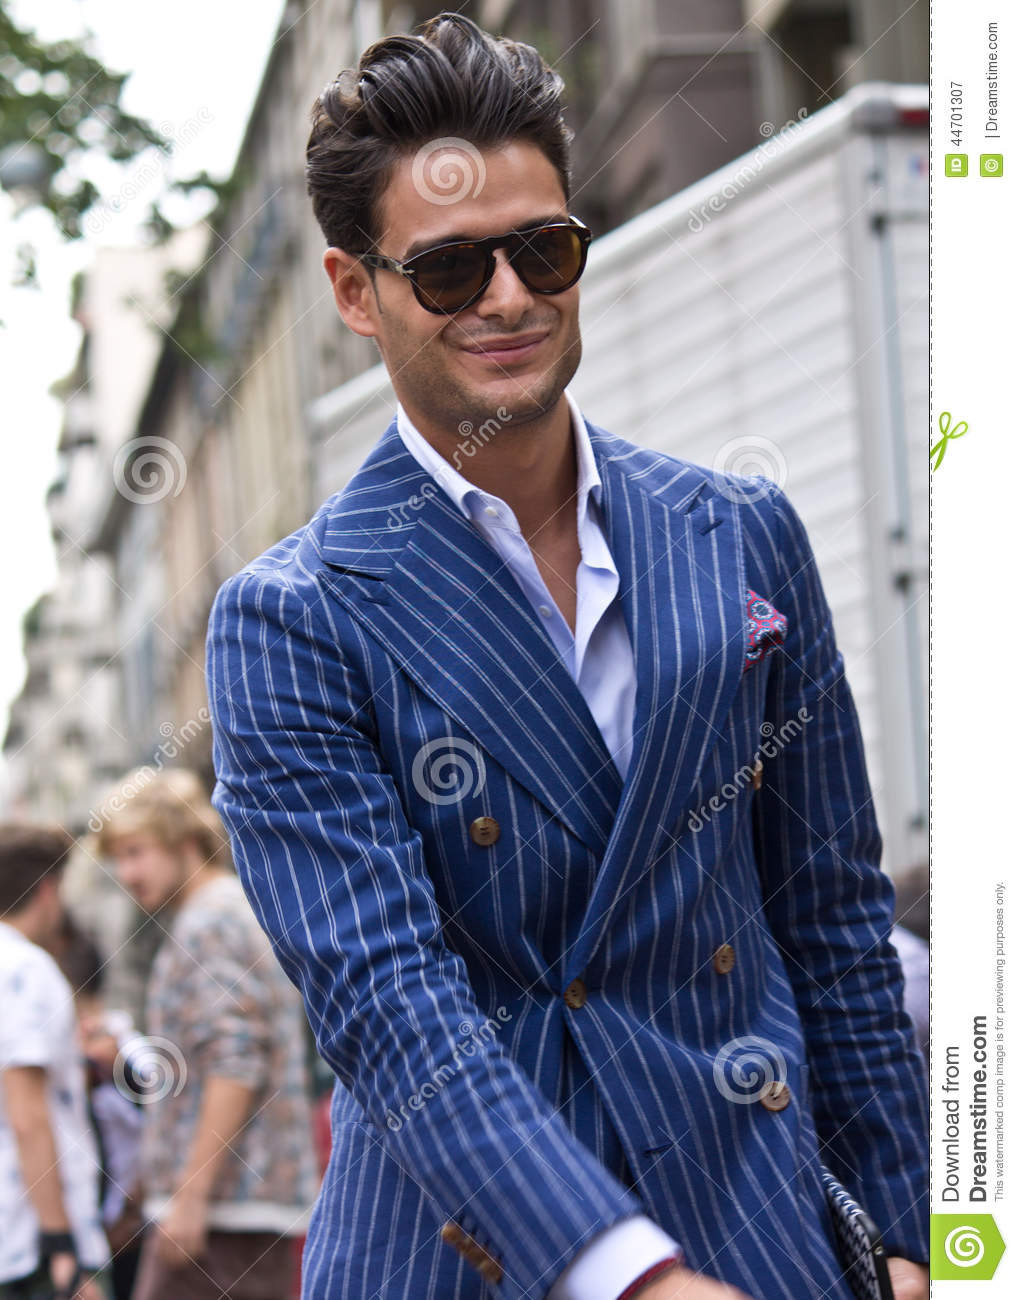 Street Style During Milan Fashion Week For Spring Summer 2015 Editorial Photography Image